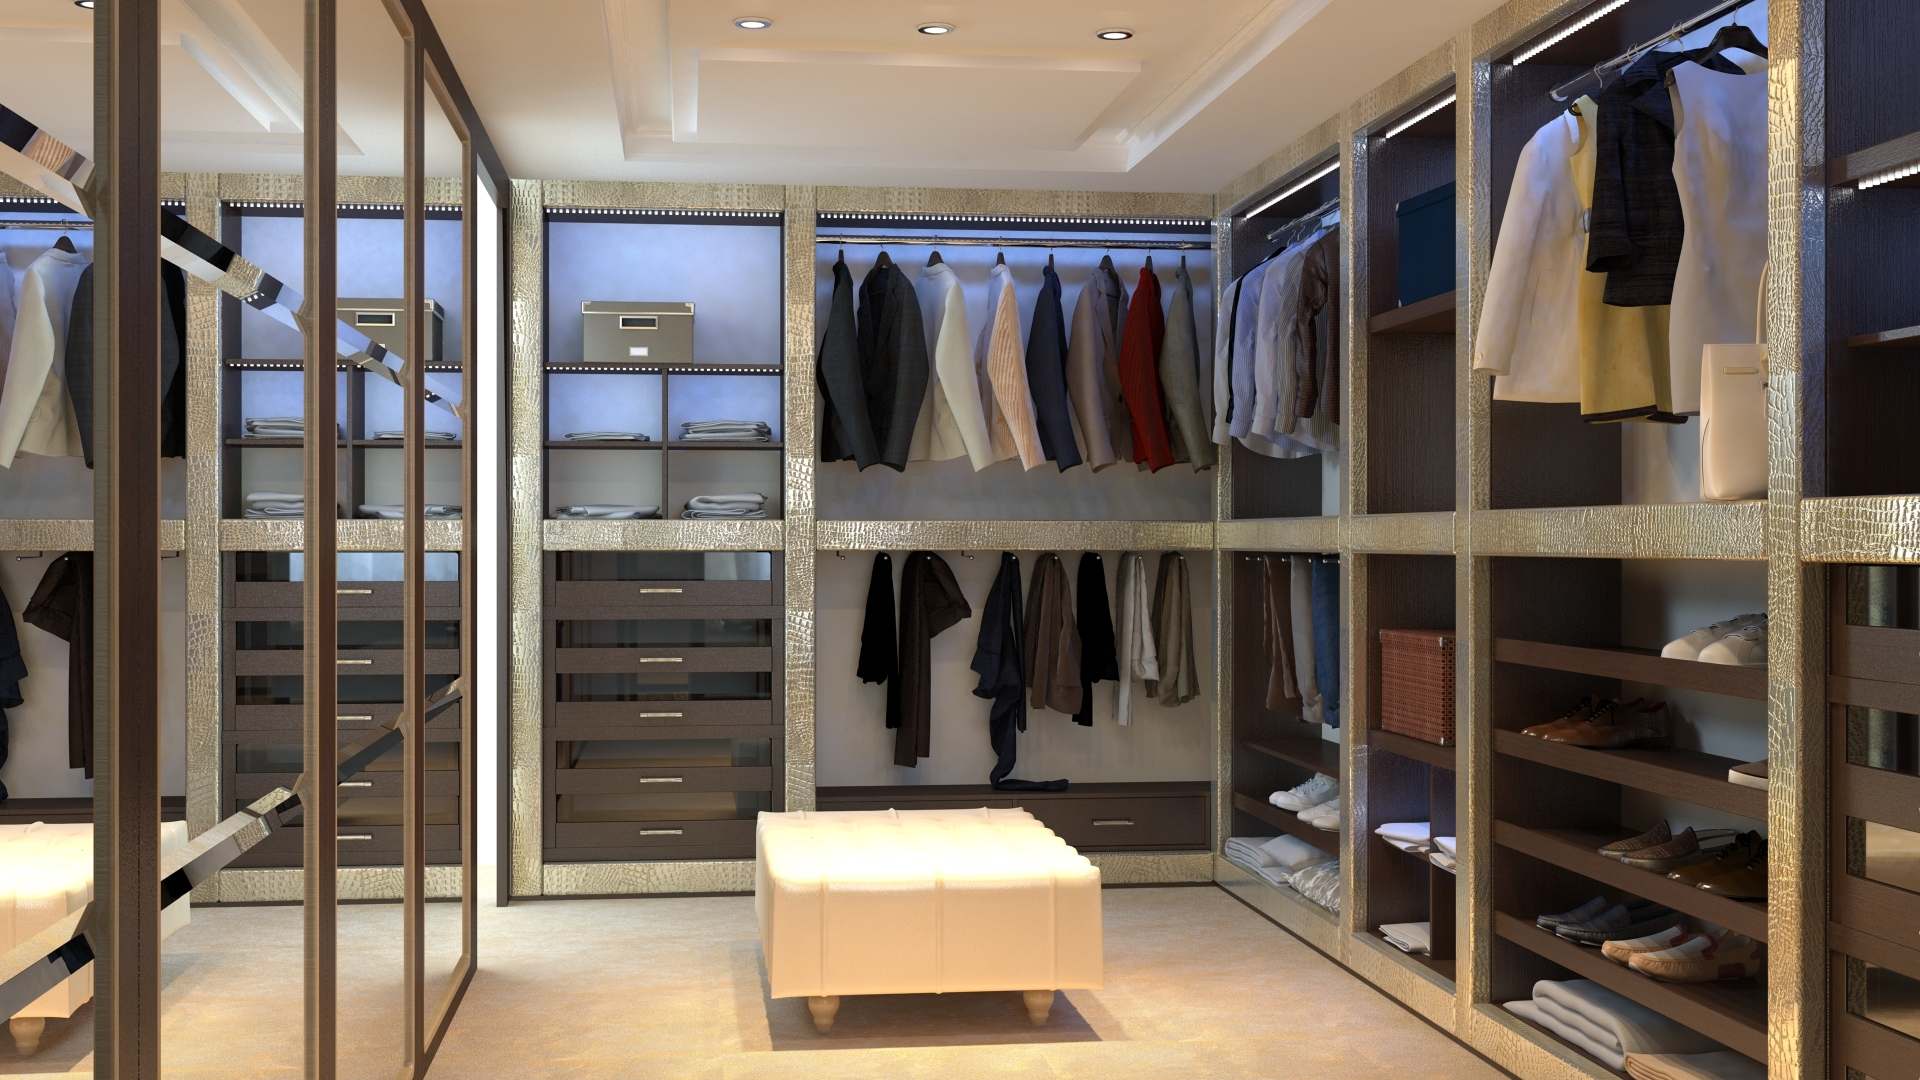 Dressing room 0339 by themerex 3docean for Configurateur dressing 3d